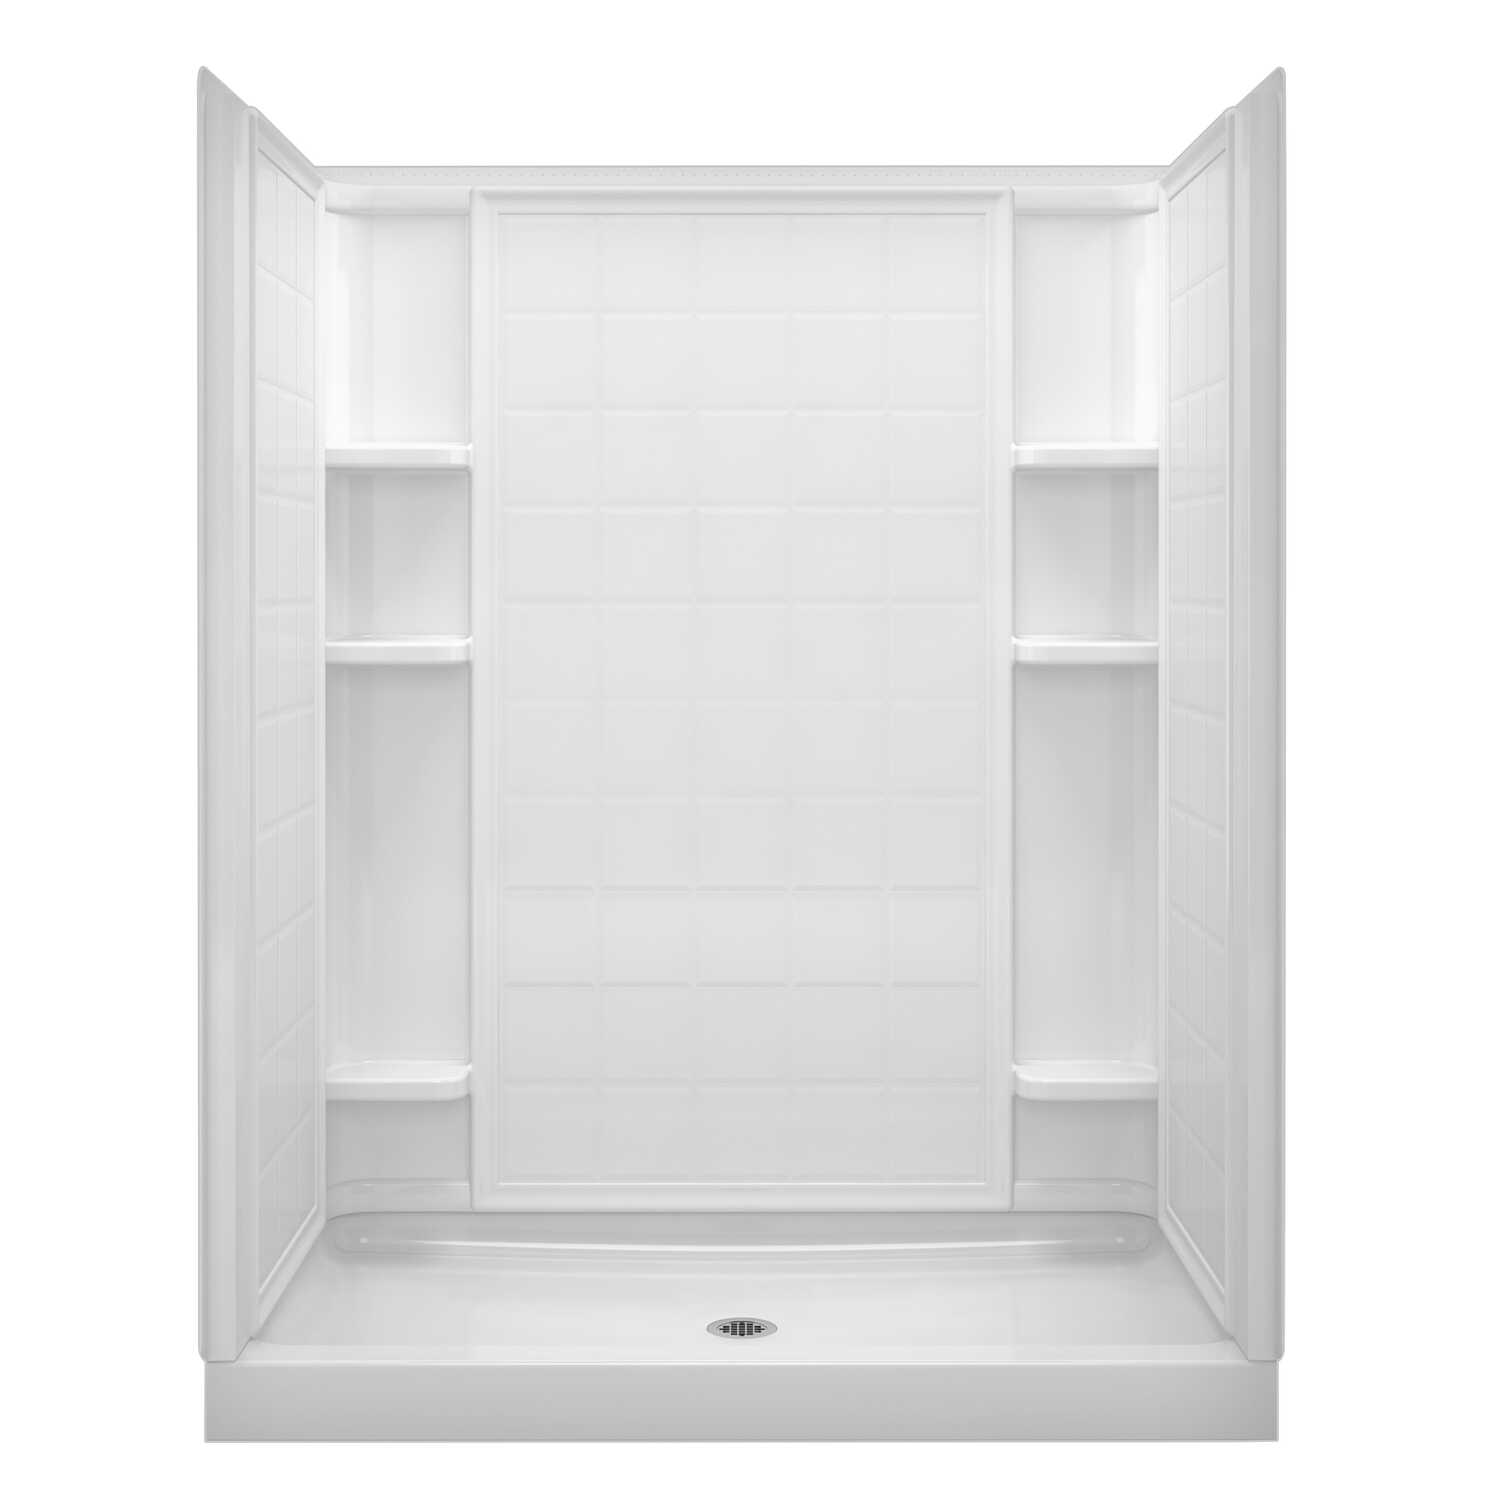 Sterling  Ensemble  75-3/4 in. H x 34 in. W x 60 in. L White  Shower Back Wall  One Piece  Square